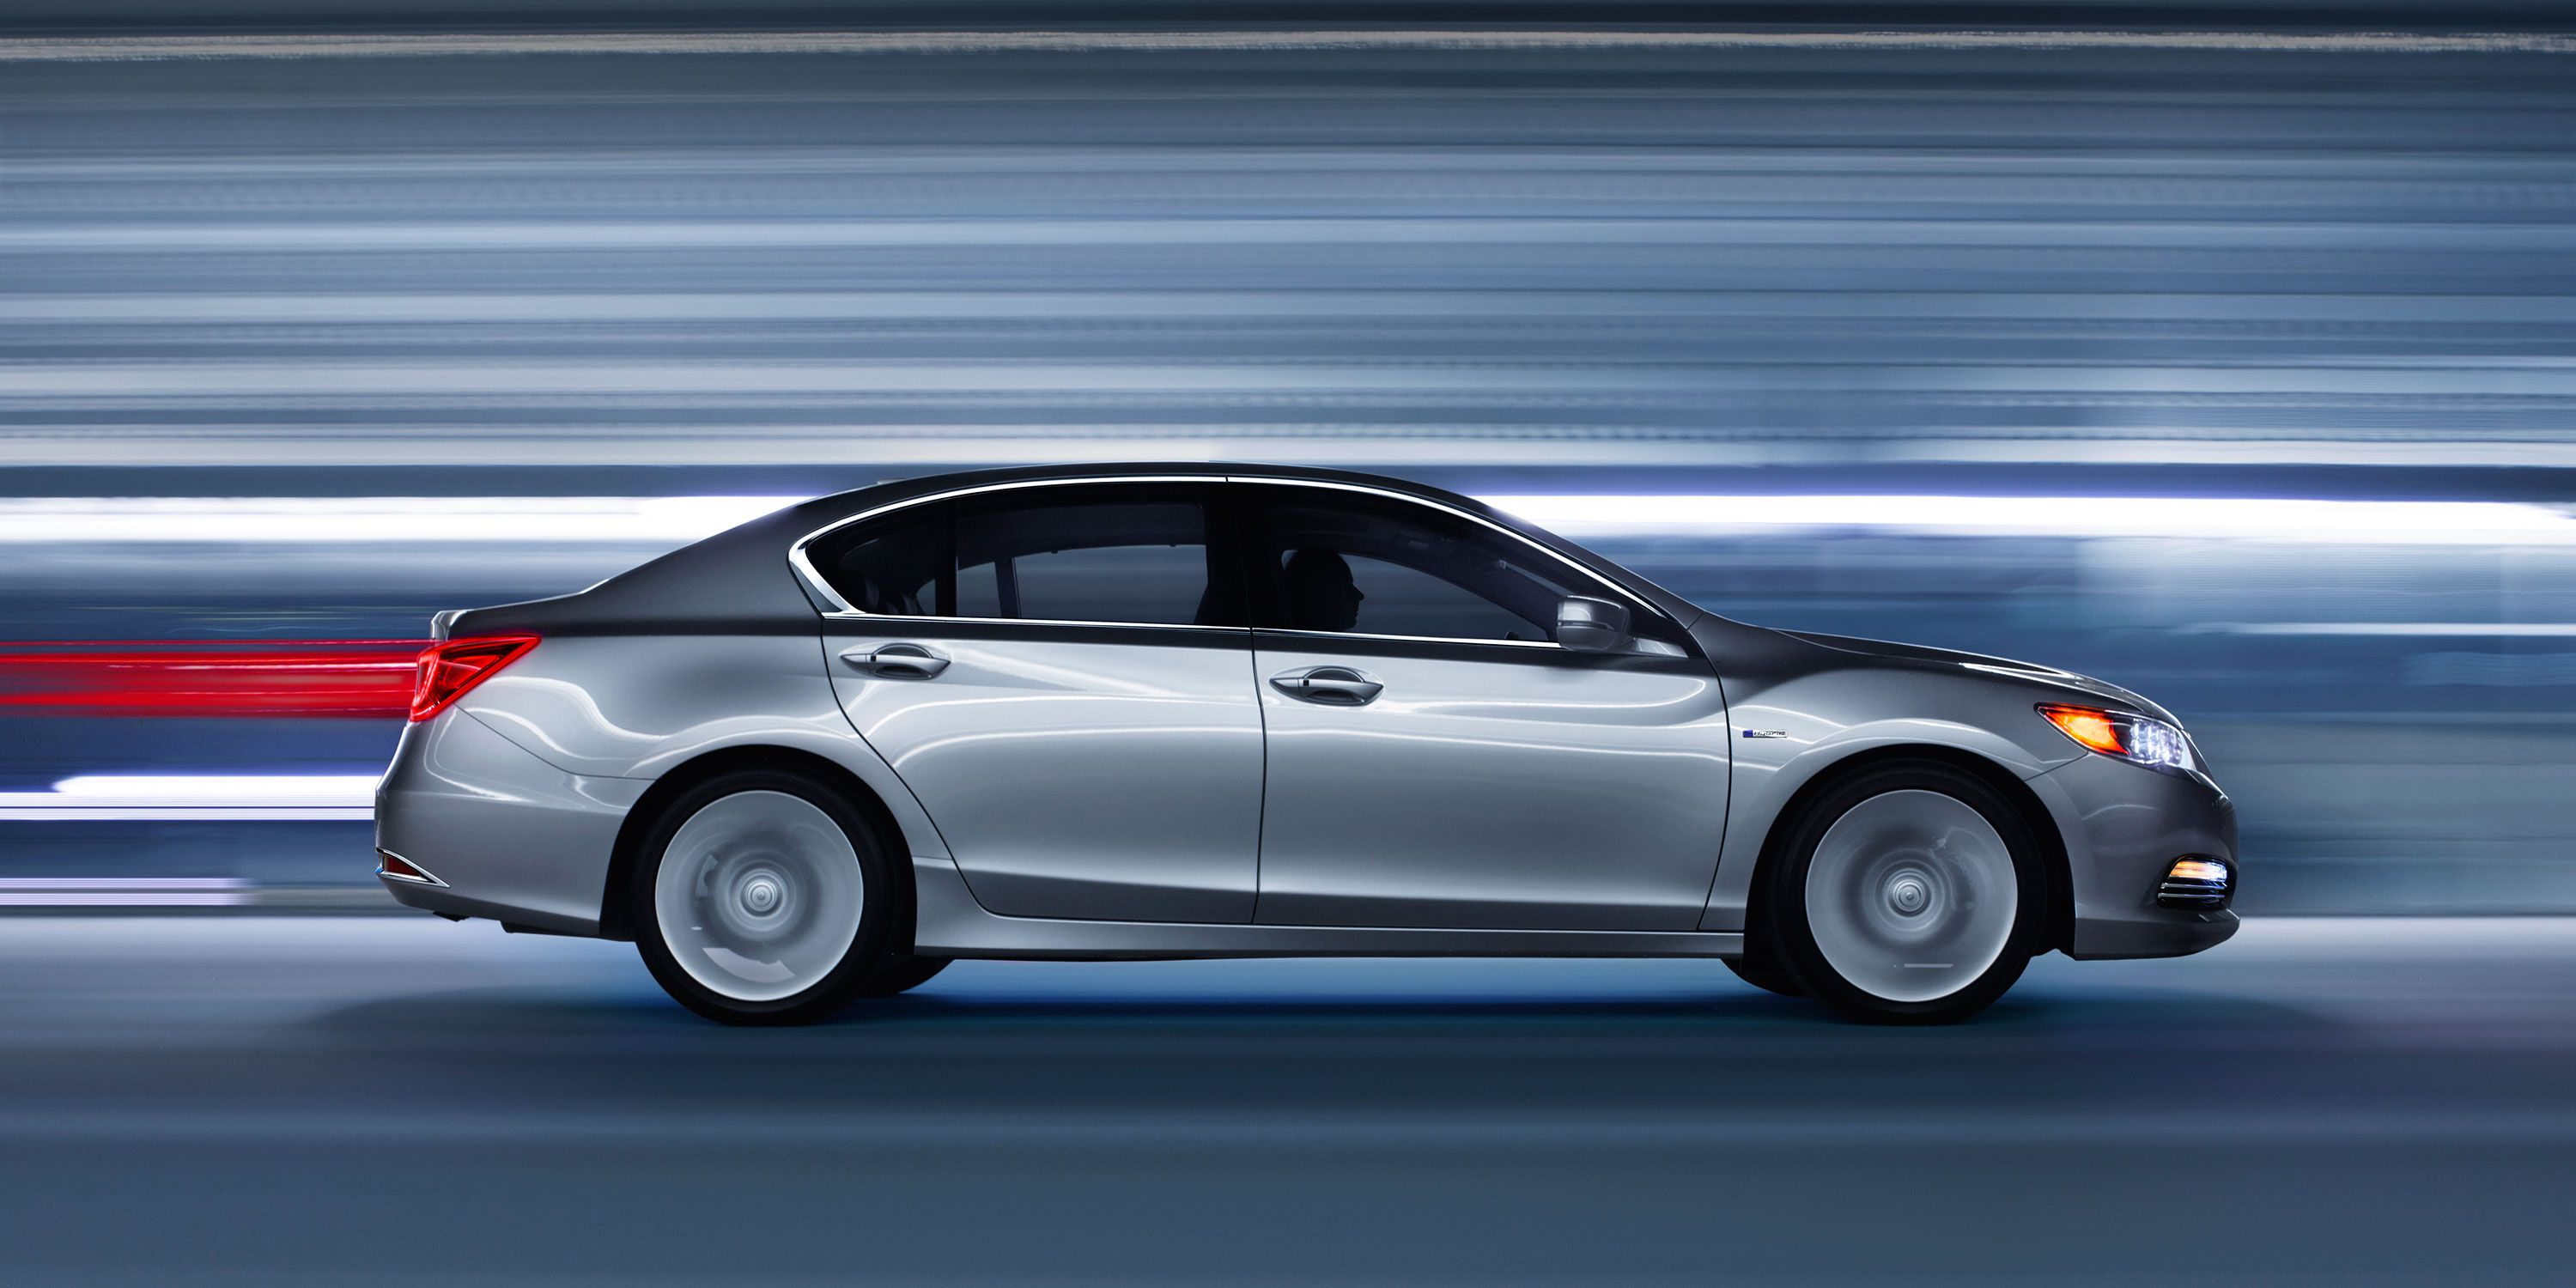 The Engine For All Rlx Models Is A 3 5 Liter 310 Horsepower V 6 Engine That Features Direct Gas Injection Variable New Car Wallpaper Technology Package Acura